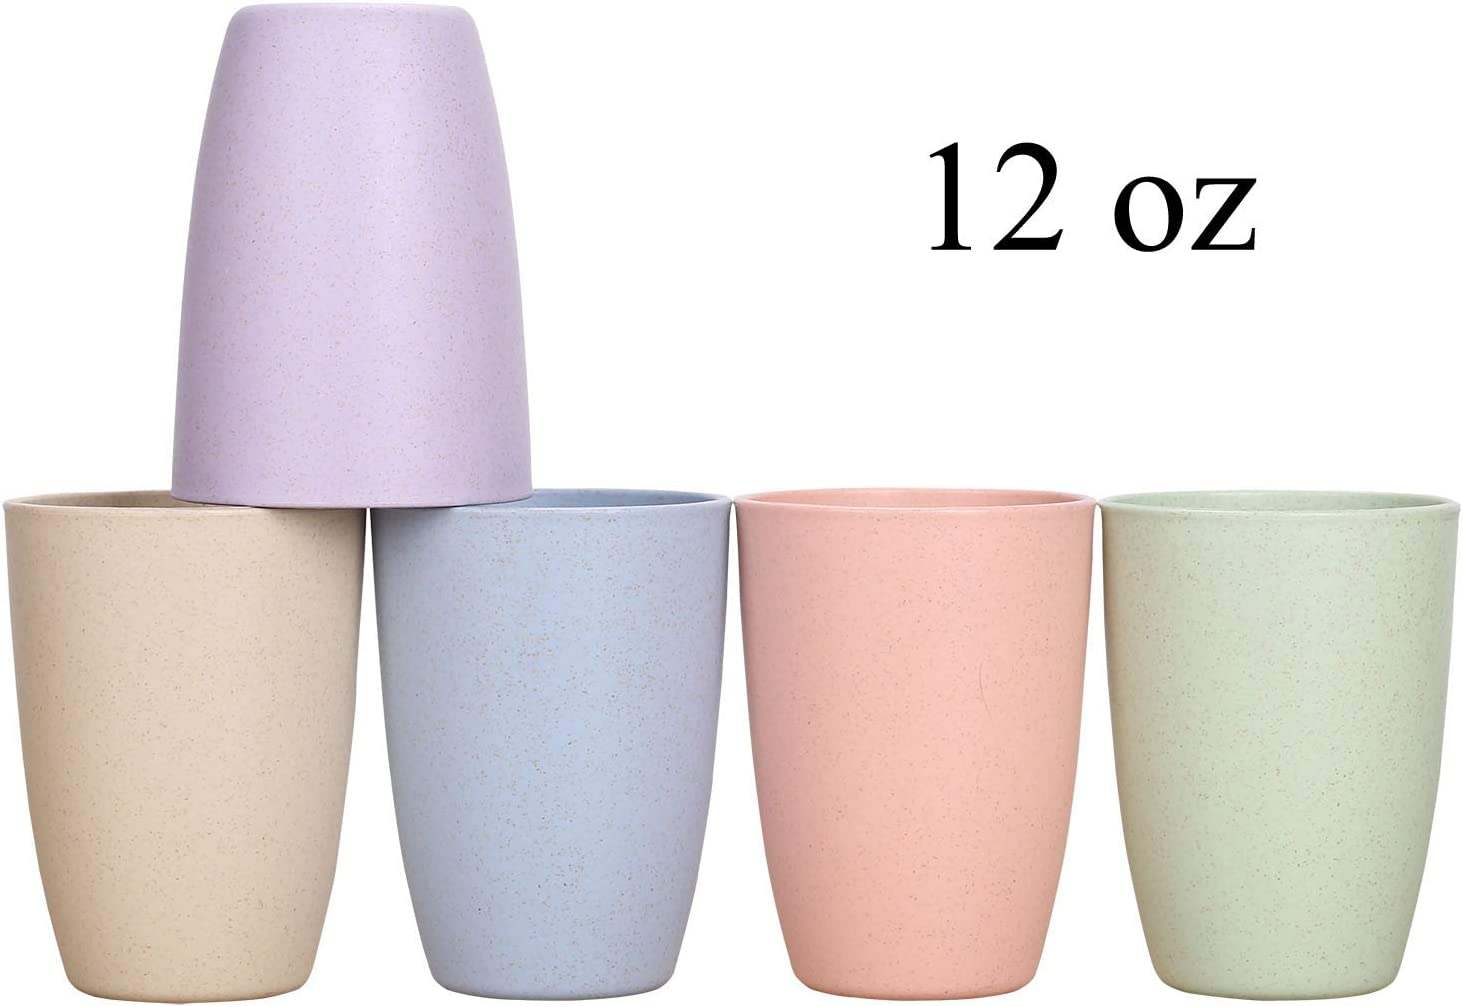 Wheat Straw Unbreakable Cup (12 oz) - Reusable Drinking Glasses Set of 5 - Dishwasher Safe - Great for Kids Children Toddler & Adult - BPA Free & Eco-Friendly